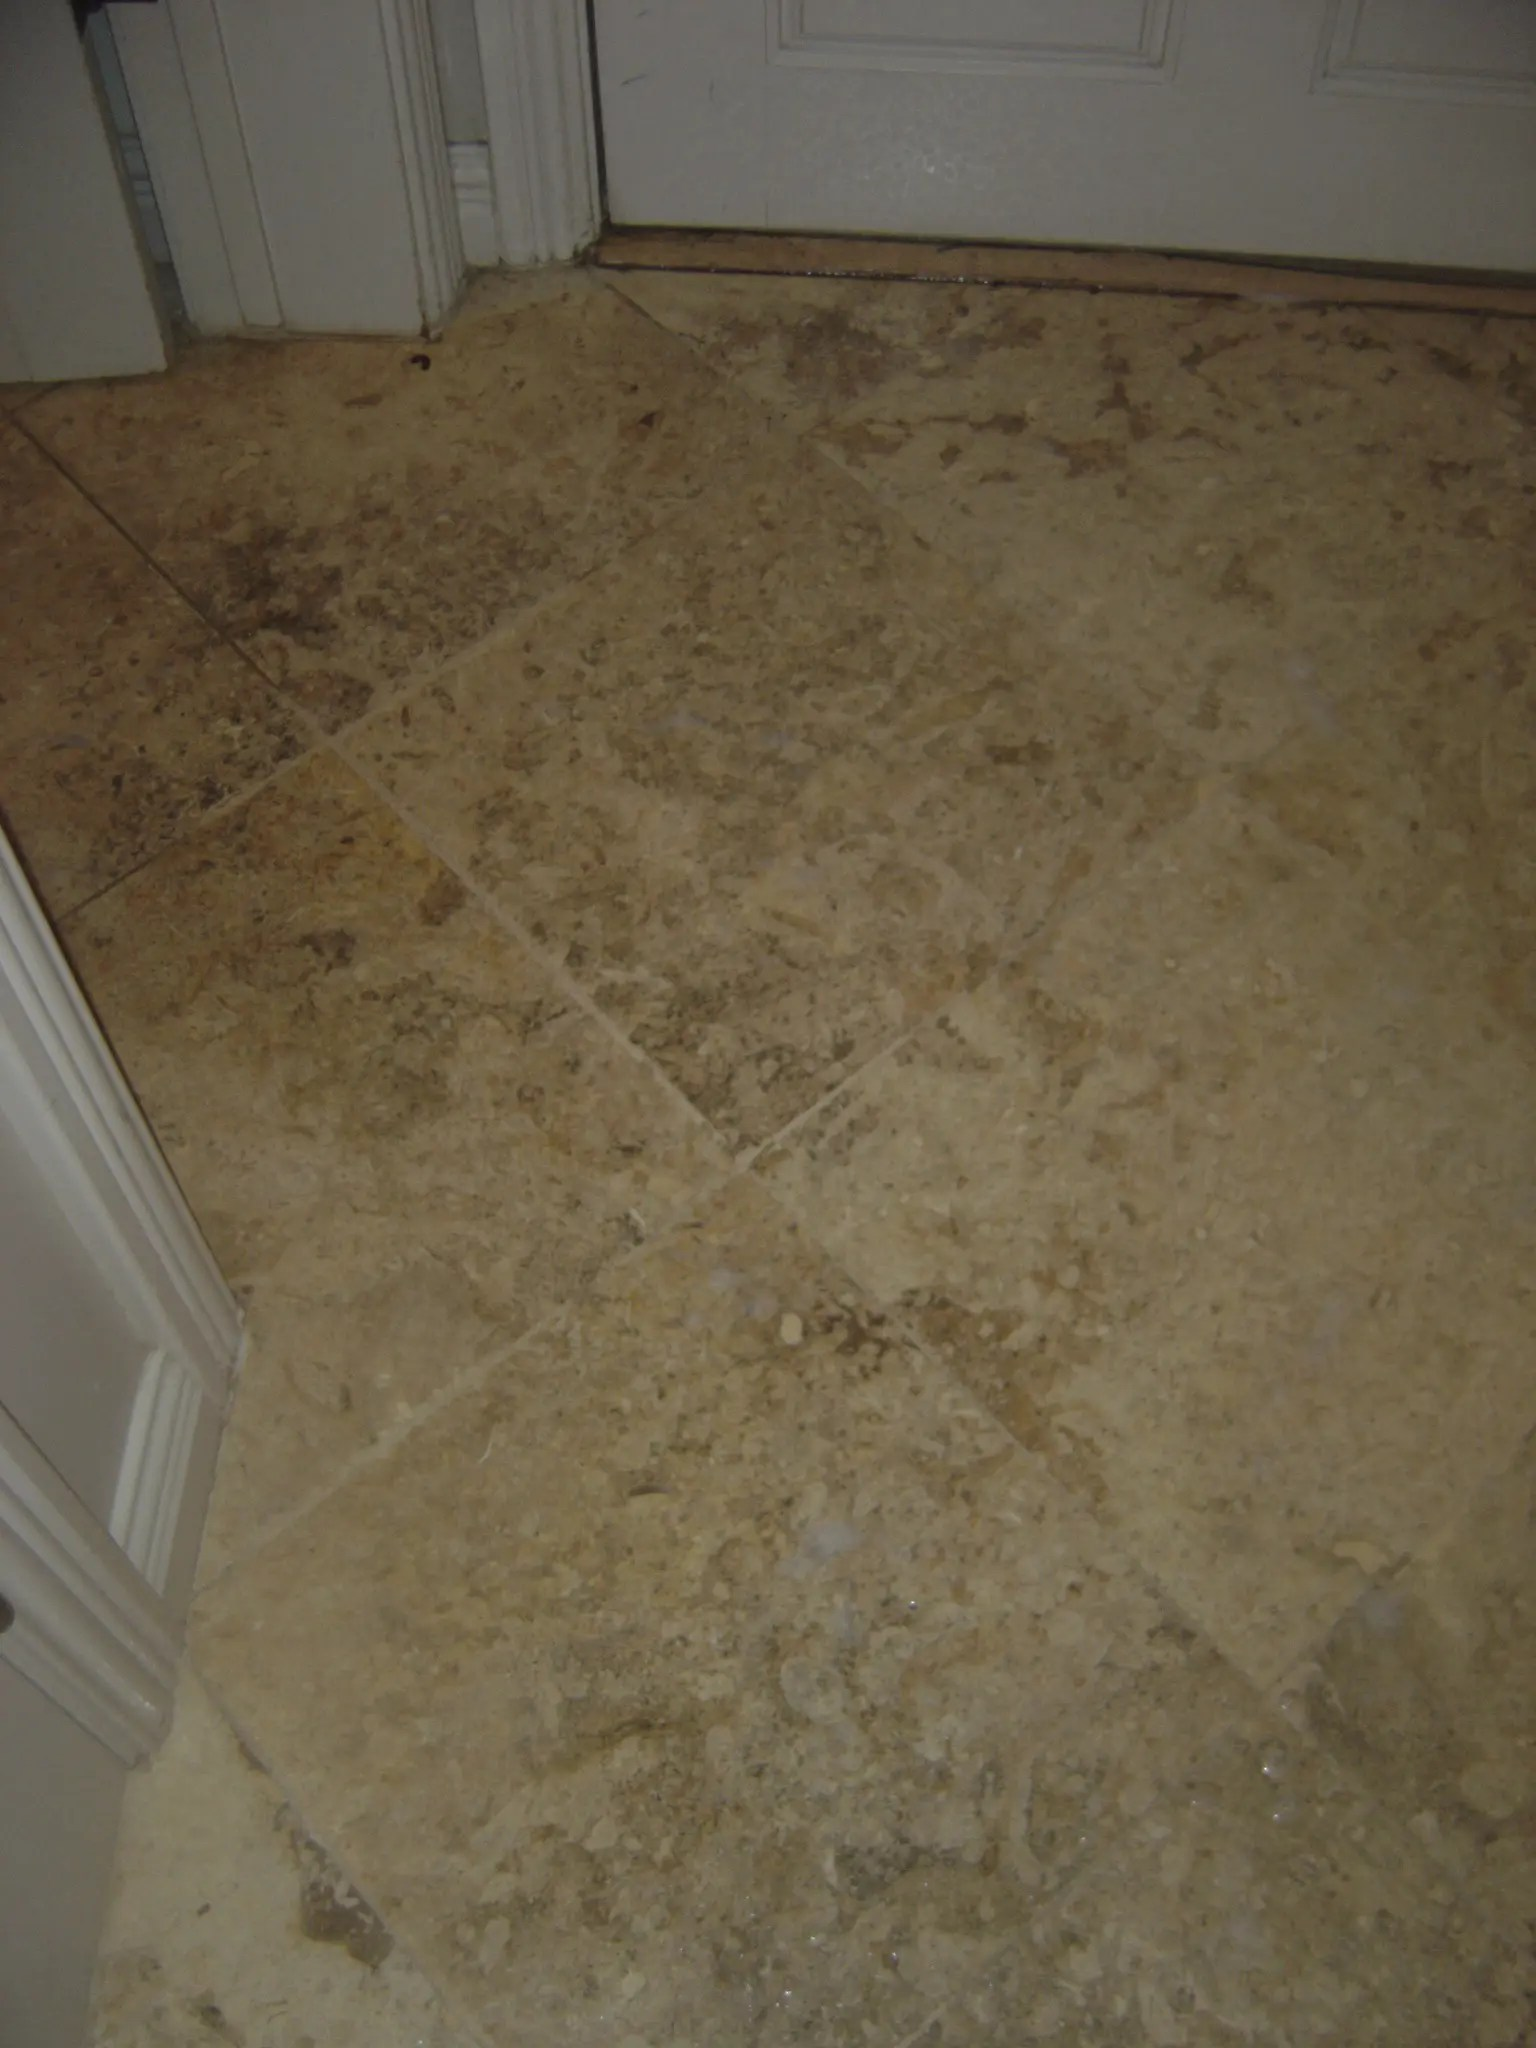 Travertine Countertop Care Travertine Floor Before Cleaning And Sealing Tucson Az